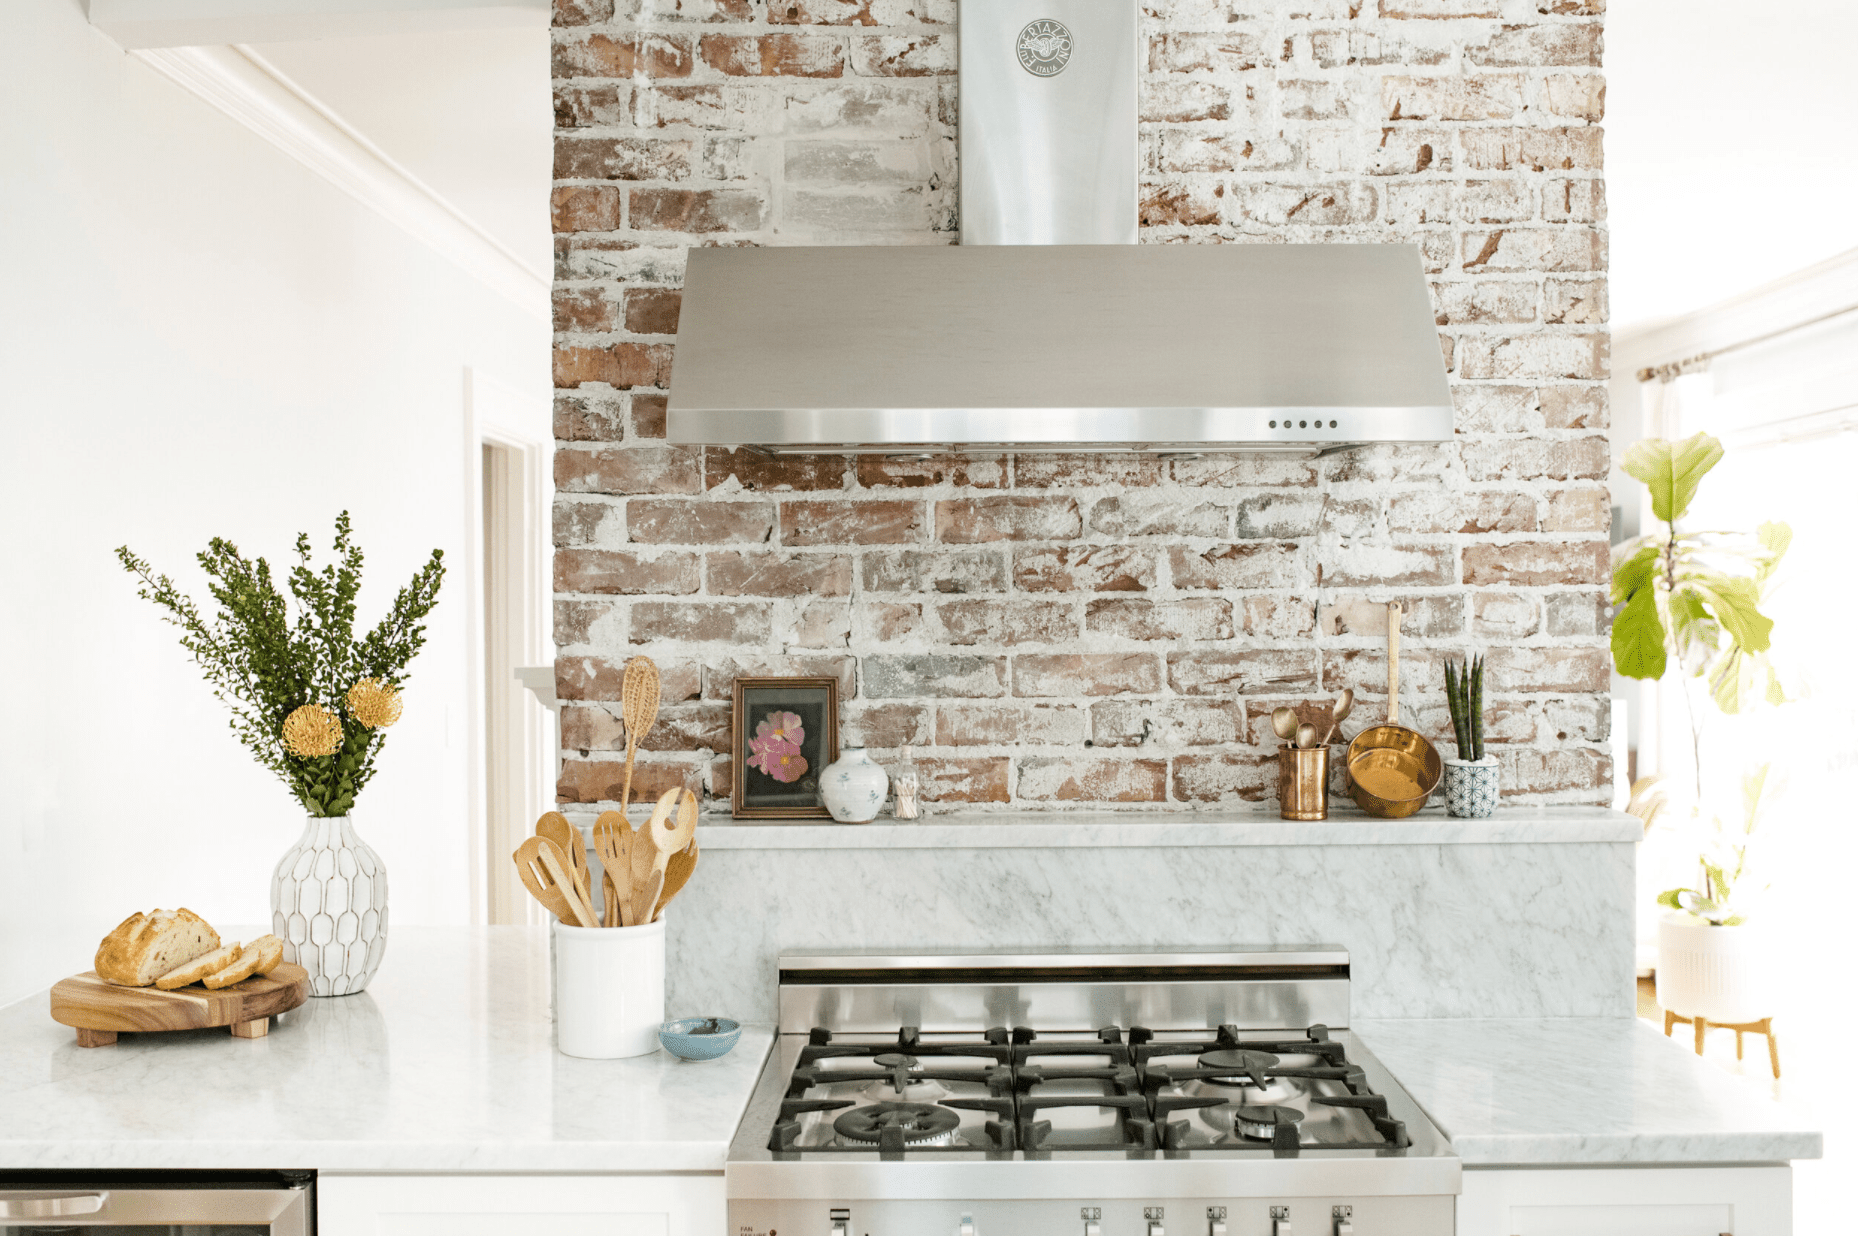 An exposed brick column, which has been turned into a kitchen backsplash